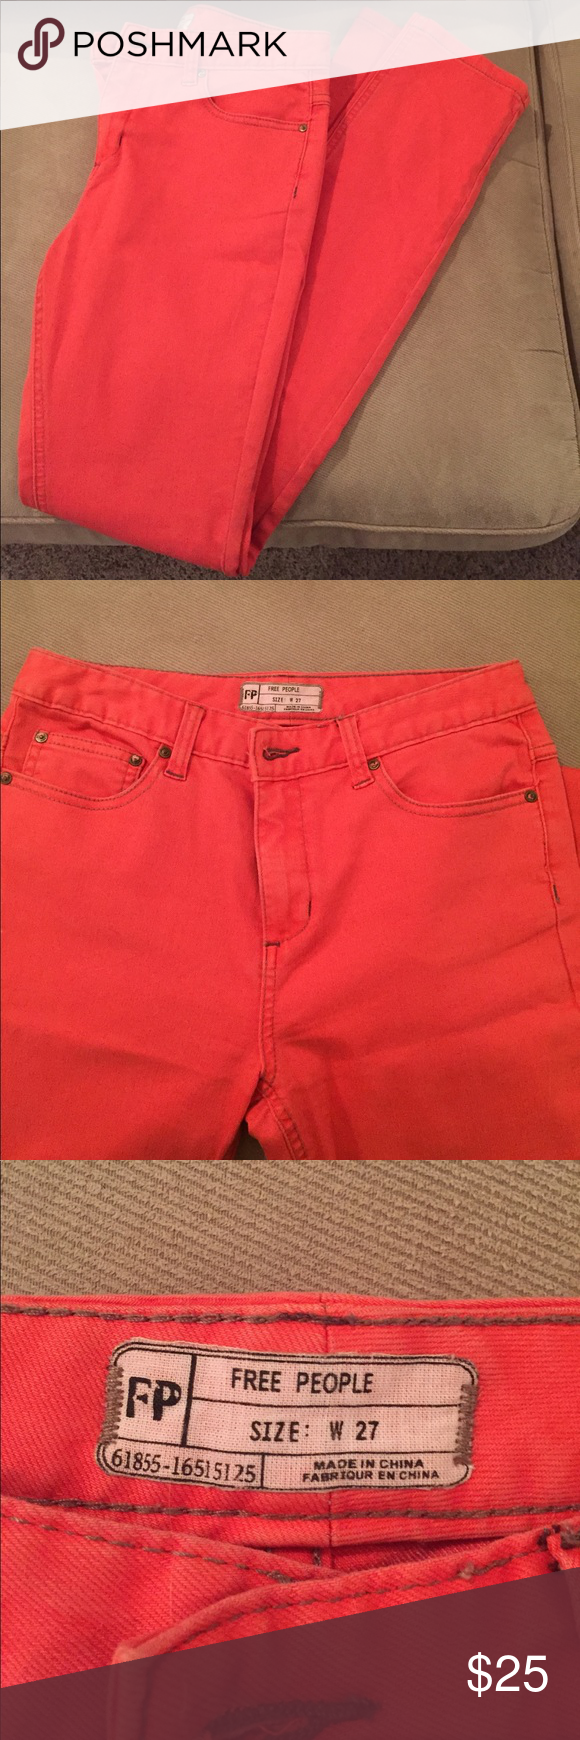 Free People Jeans Rarely worn, bright orange jeans by Free People.  Buttoned fly, front and back pockets.  Cotton, polyester, spandex blend. Free People Jeans Straight Leg